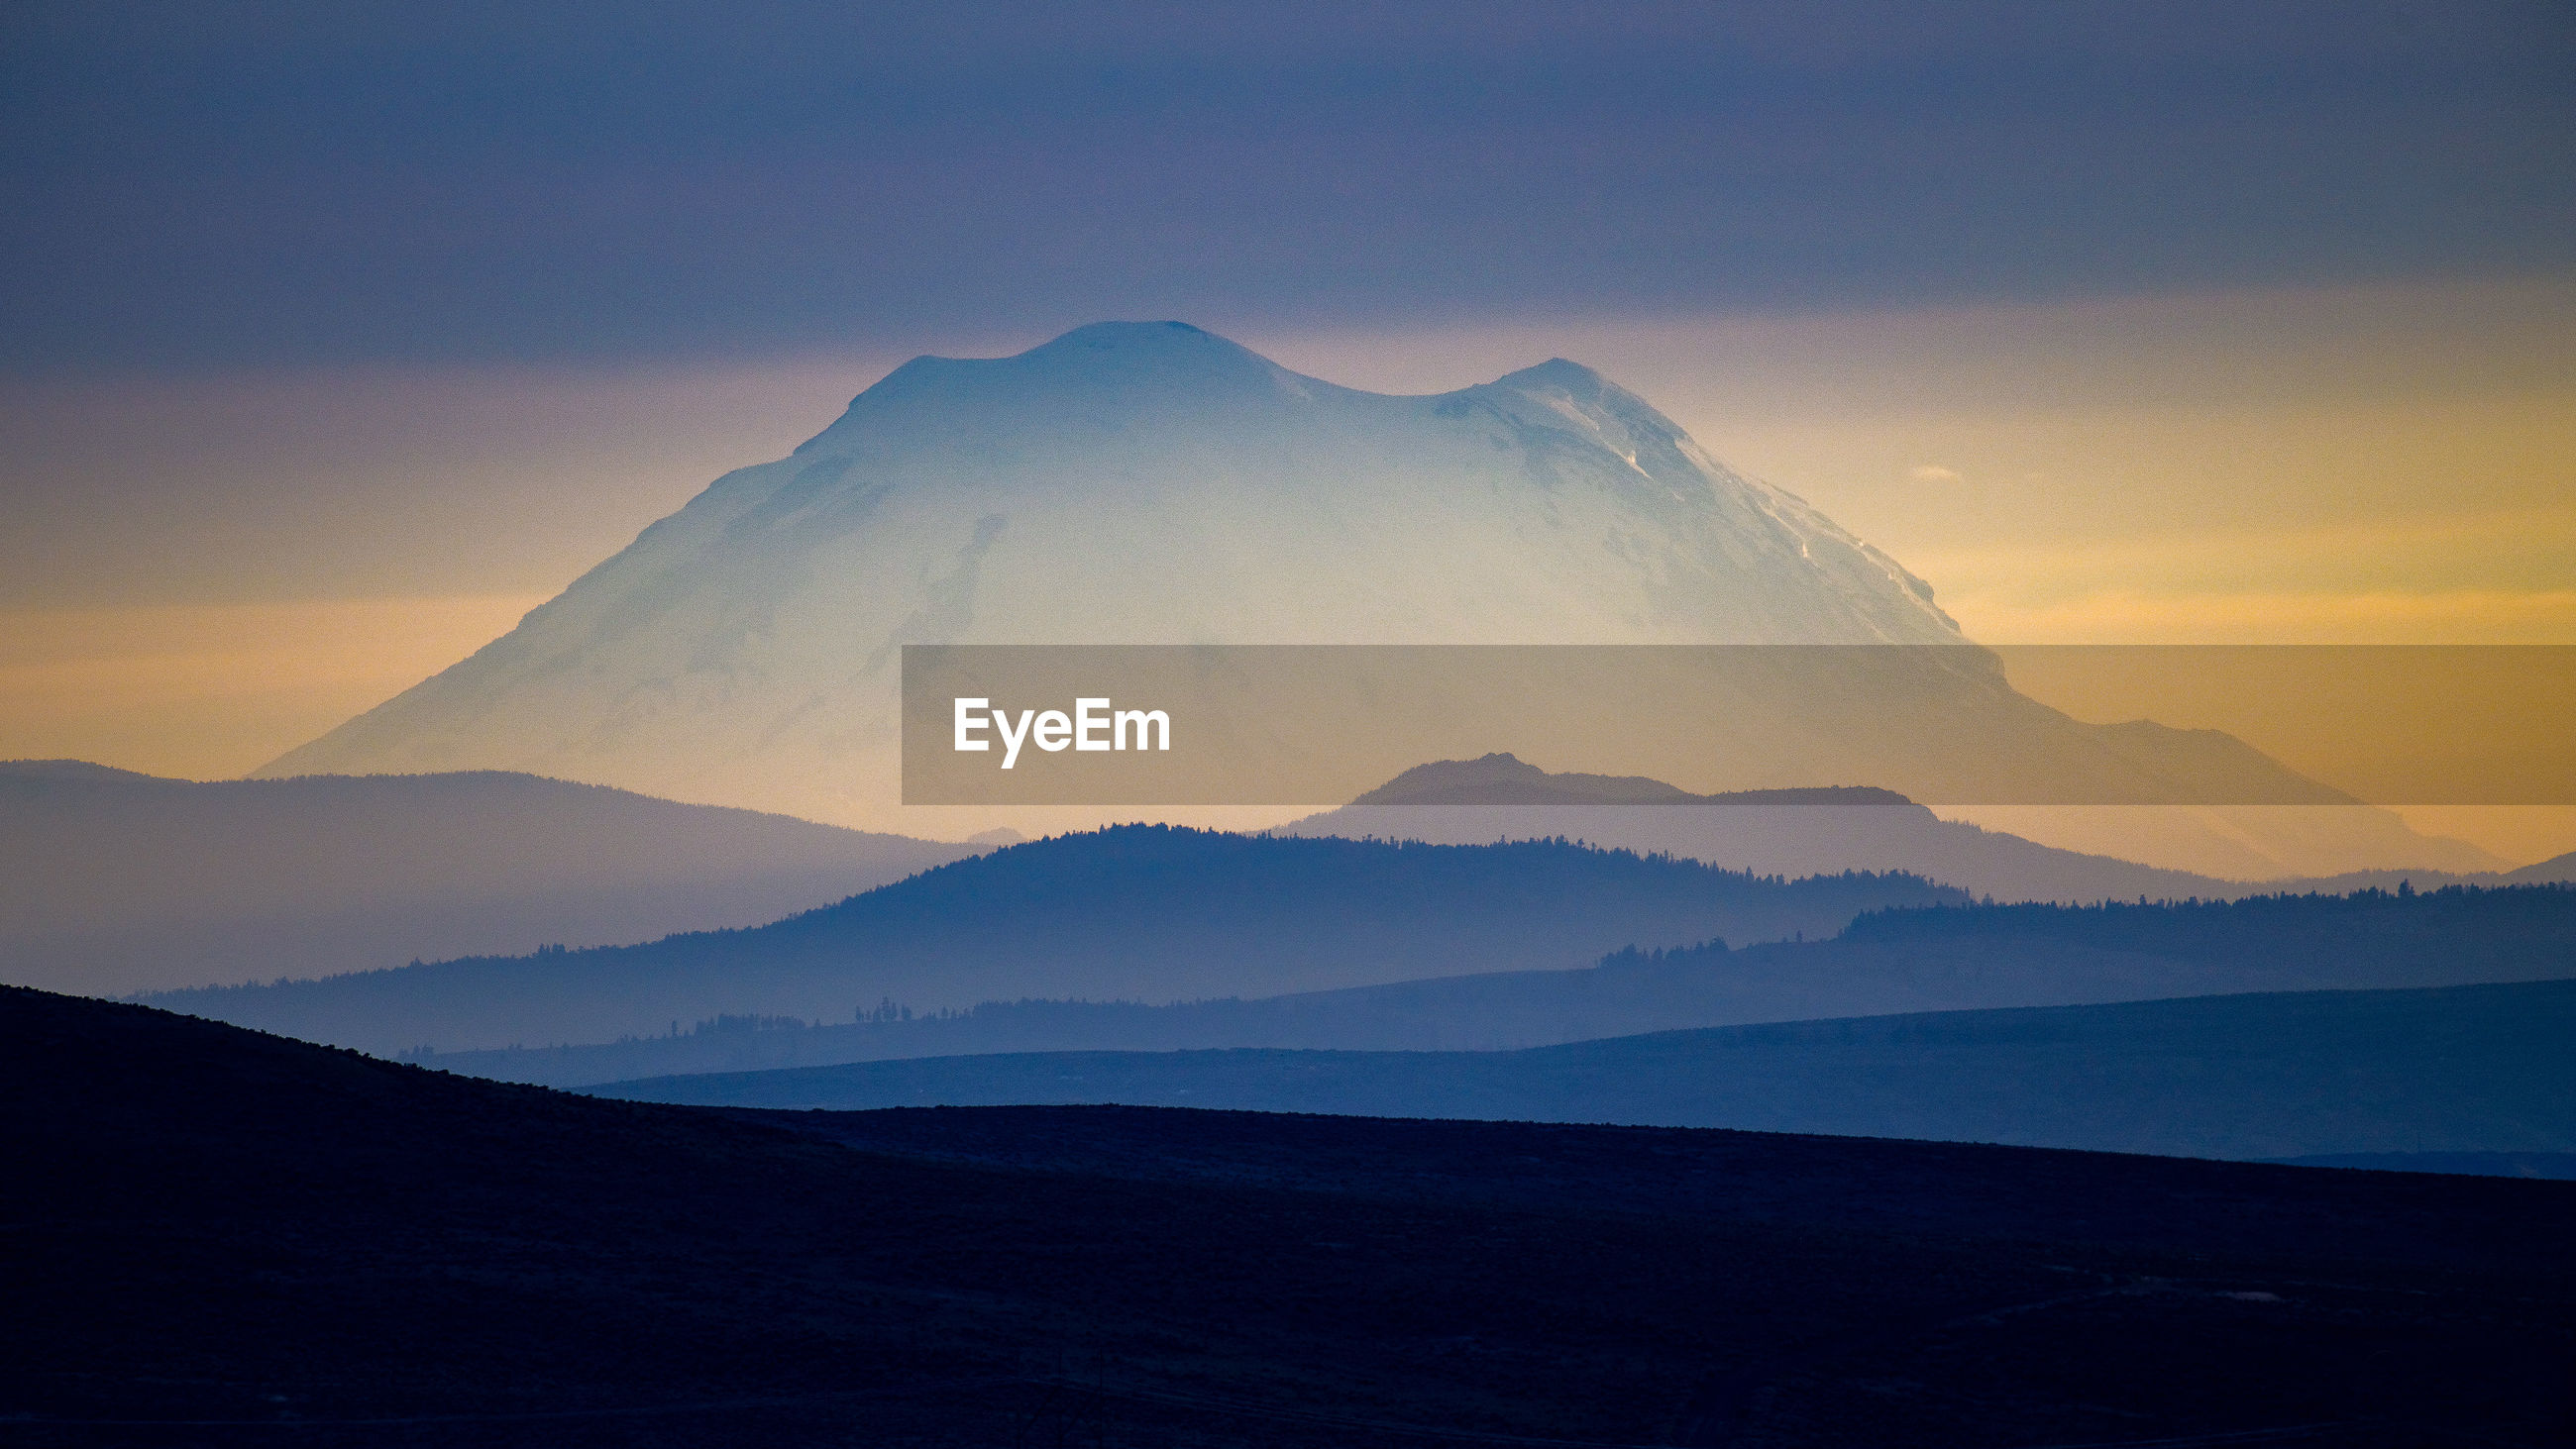 SCENIC VIEW OF VOLCANIC MOUNTAINS AGAINST SKY DURING SUNSET